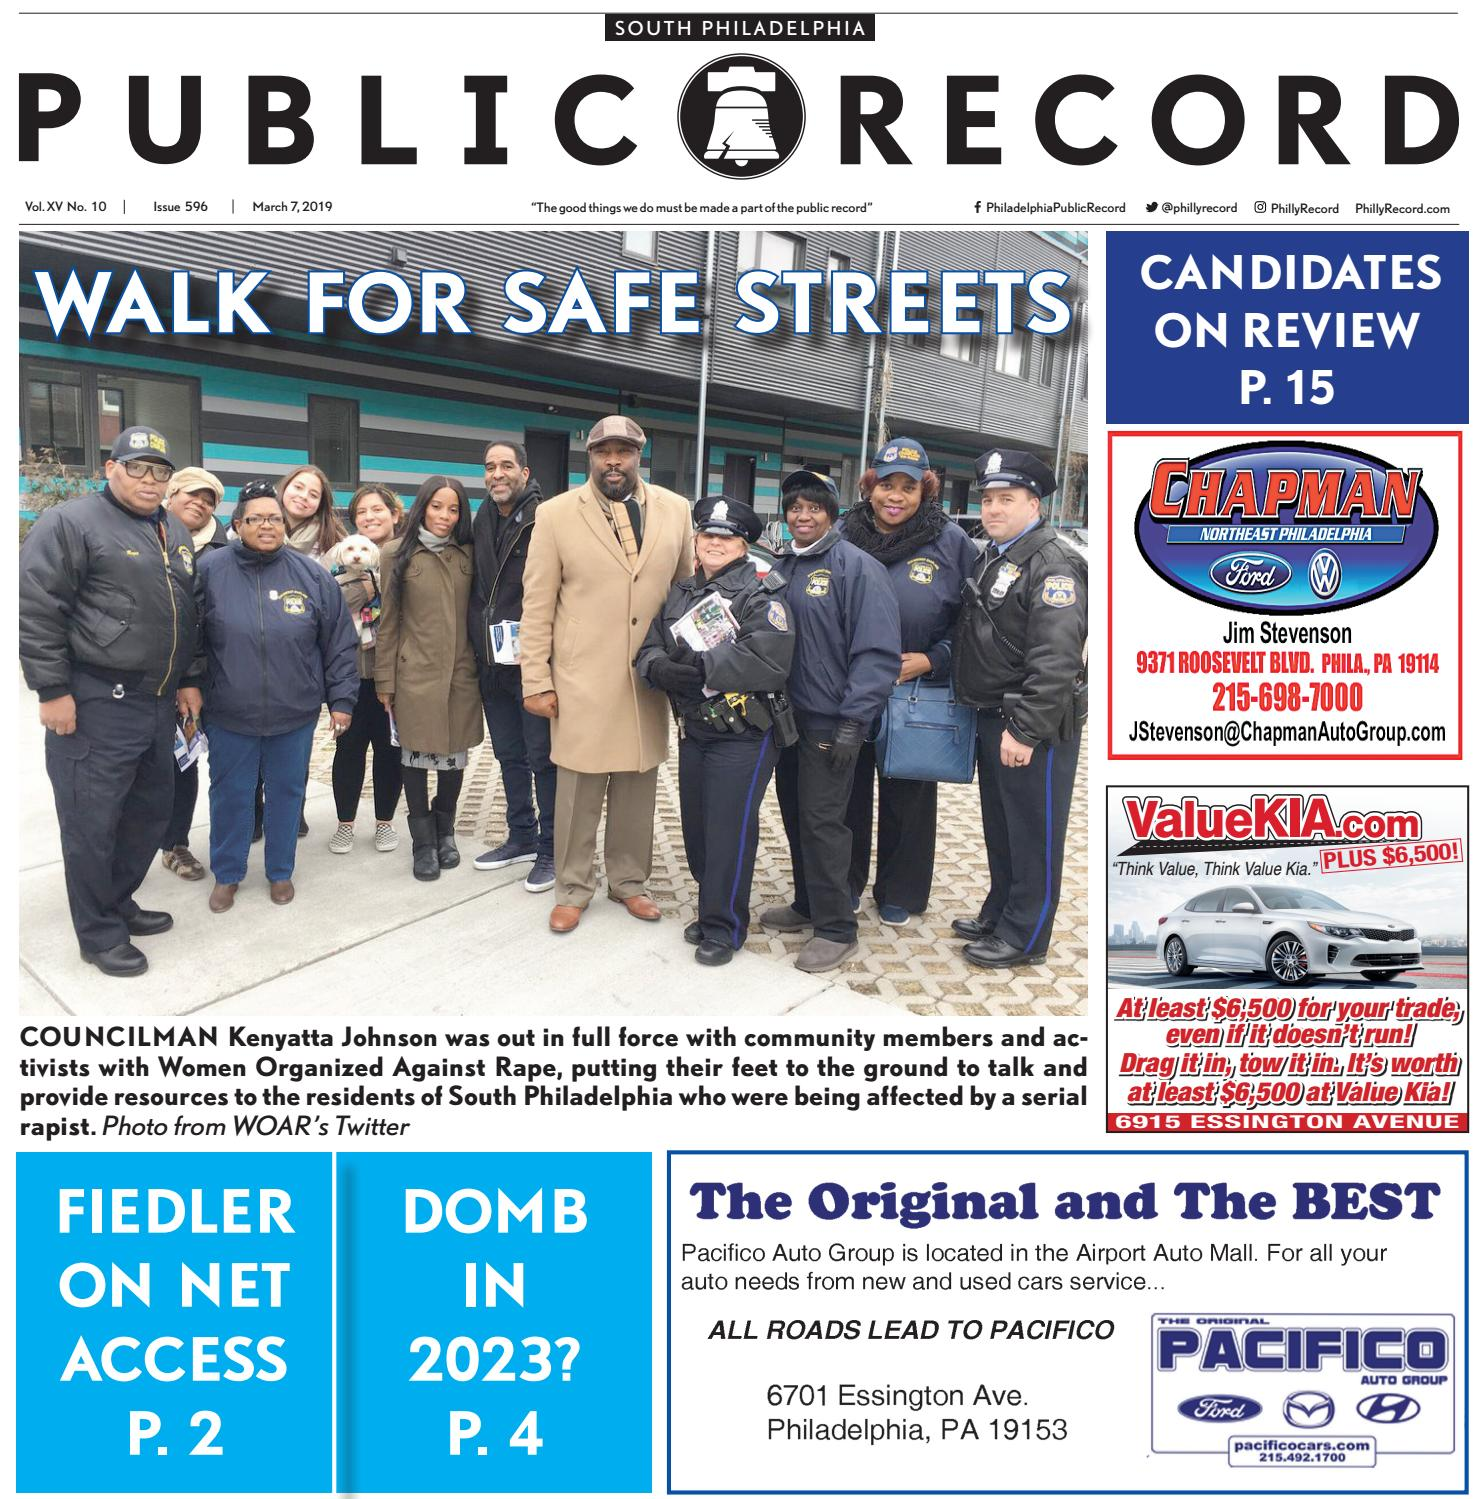 09c436d9524 South Philadelphia Public Record by The Public Record - issuu